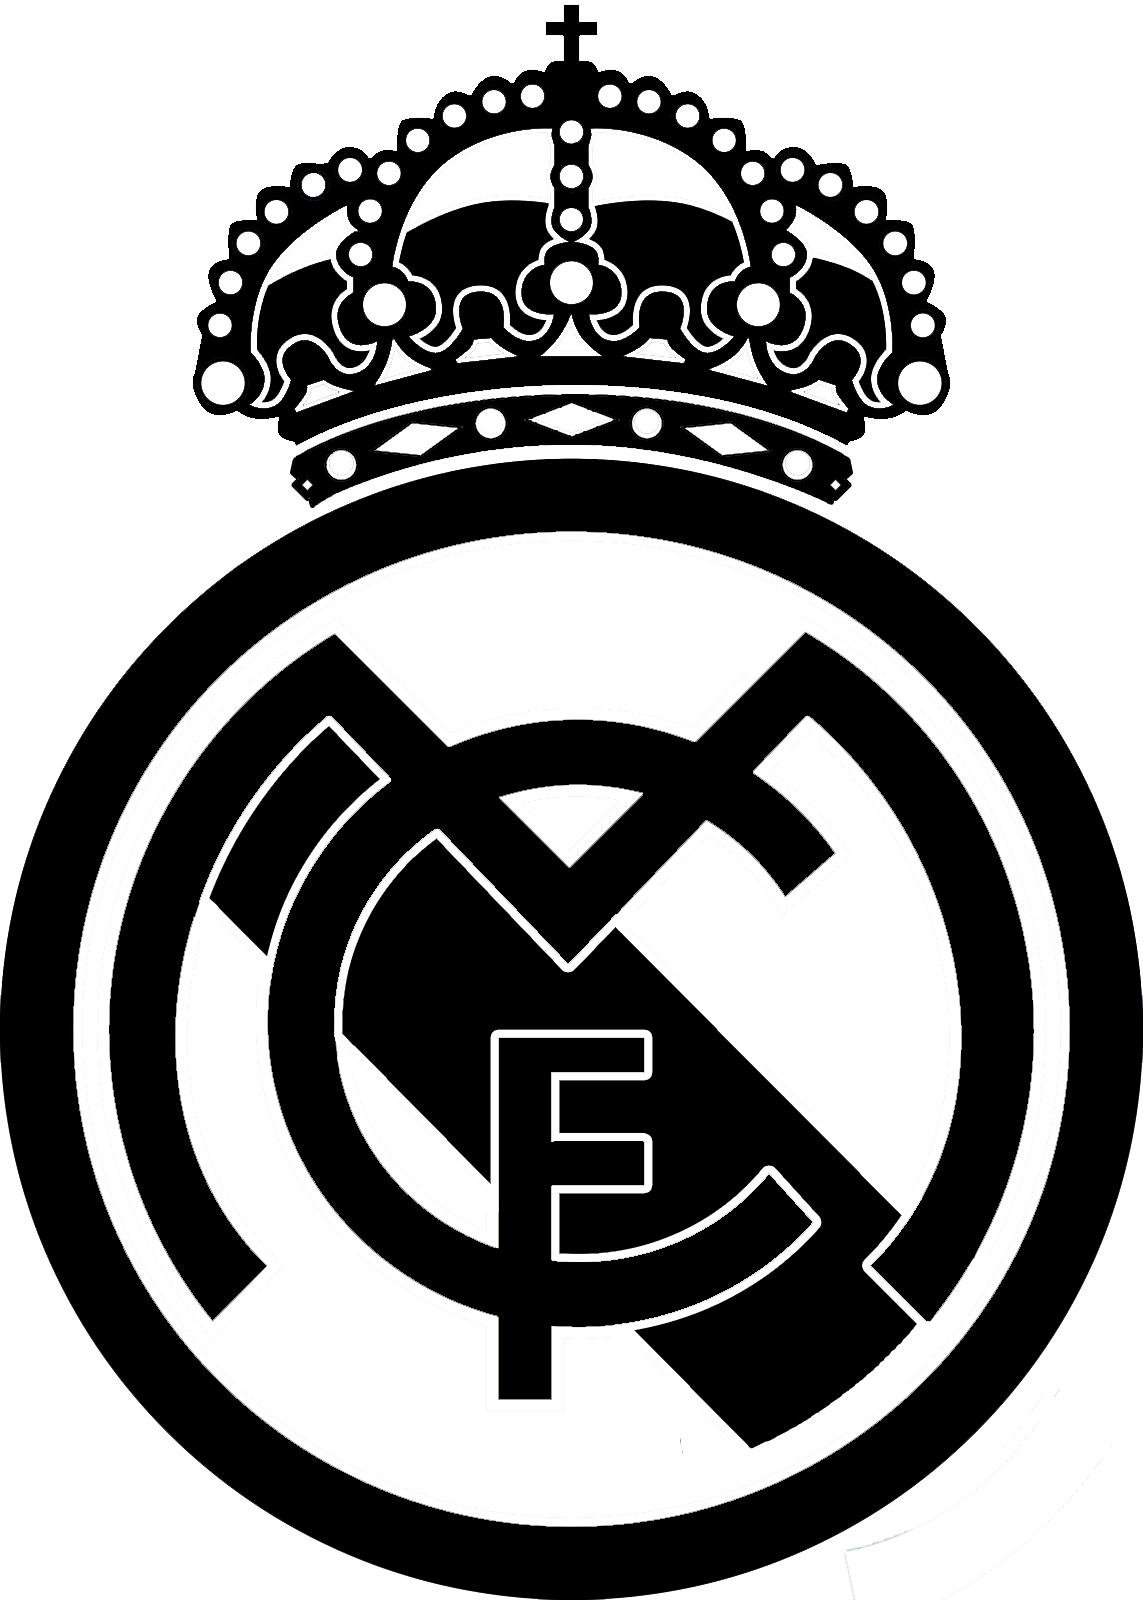 Real madrid logo clipart vector freeuse Index of /BR/LNetshoes/production/20150430/BADGE vector freeuse